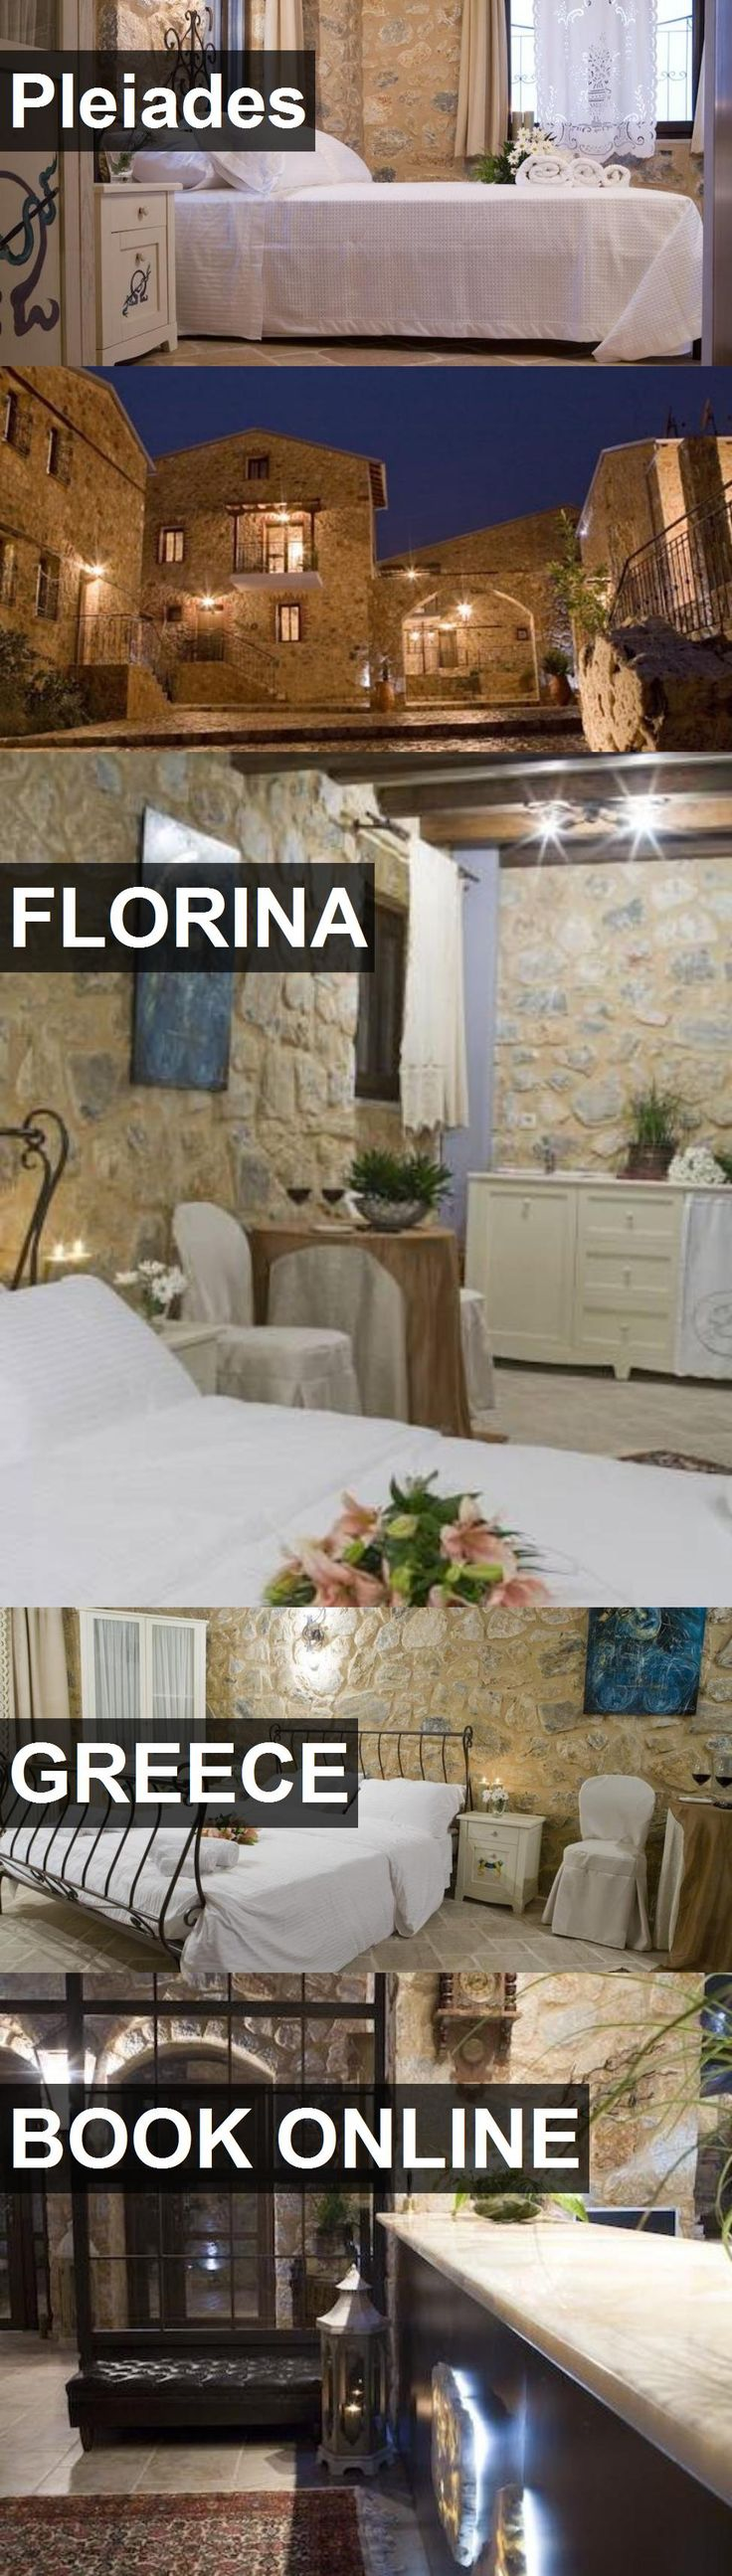 Hotel Pleiades in Florina, Greece. For more information, photos, reviews and best prices please follow the link. #Greece #Florina #travel #vacation #hotel